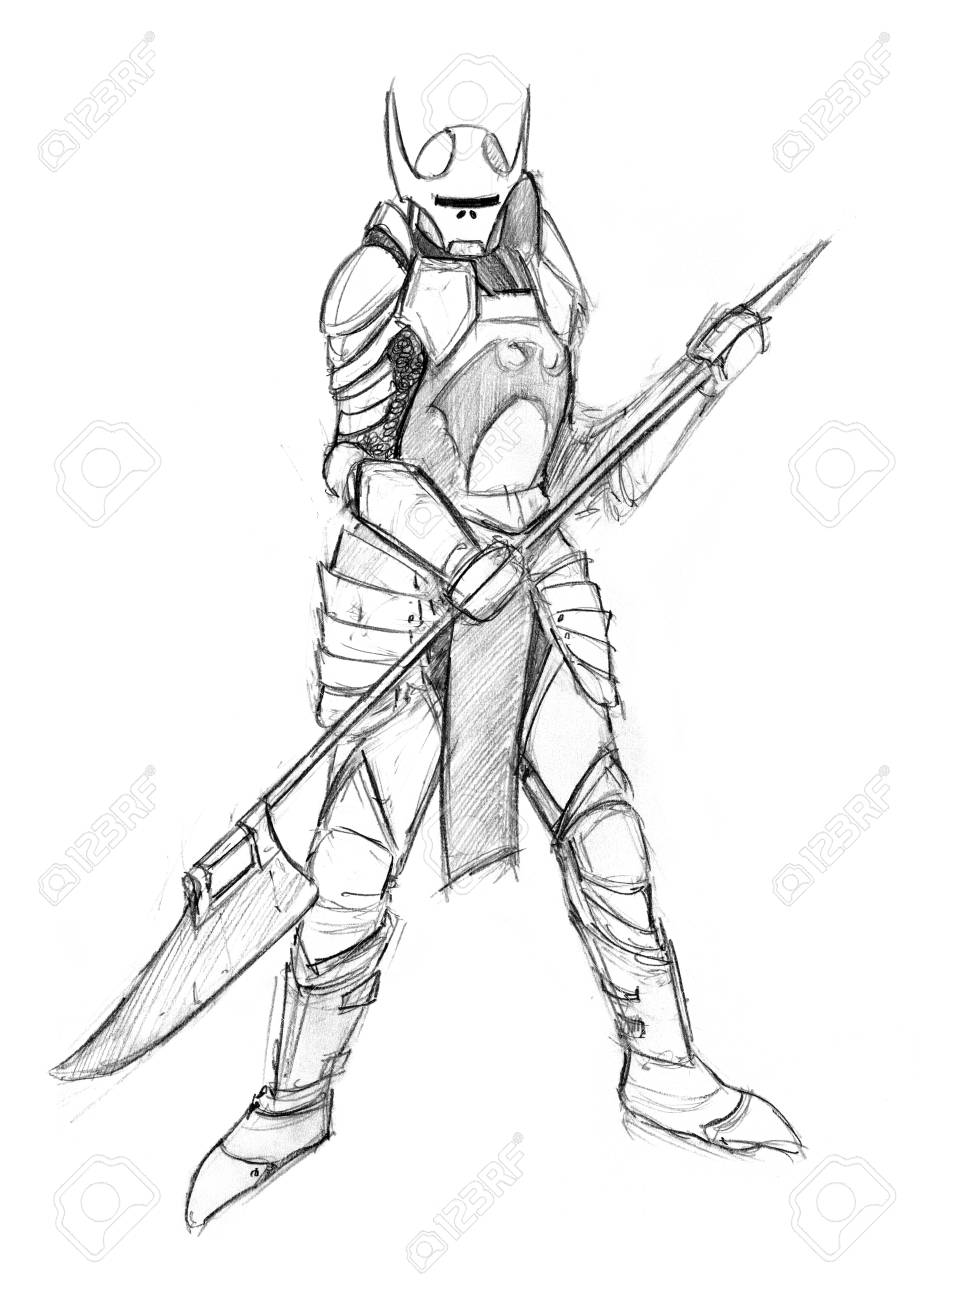 Black and white rough grunge pencil sketch of evil warrior knight concept art drawing